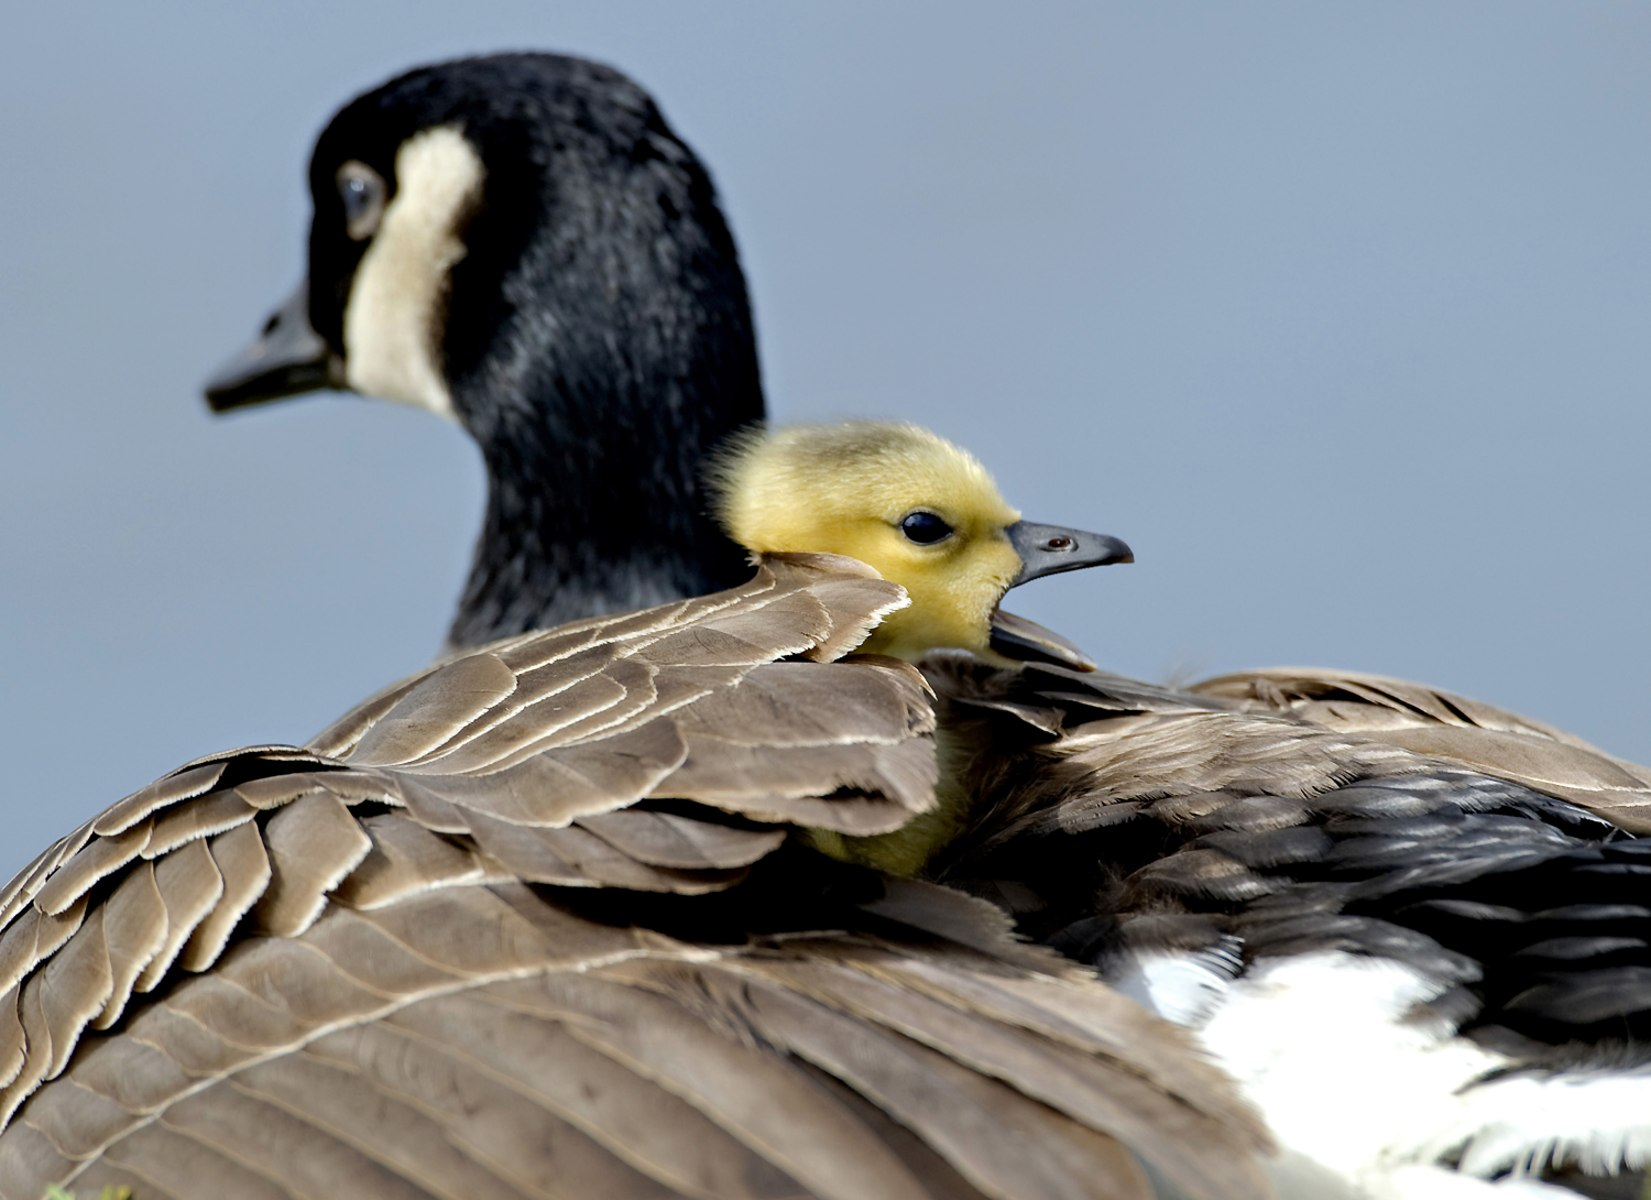 Image: A newly hatched wild Canada goose gosling yawns while snuggling in the feathers of its parent